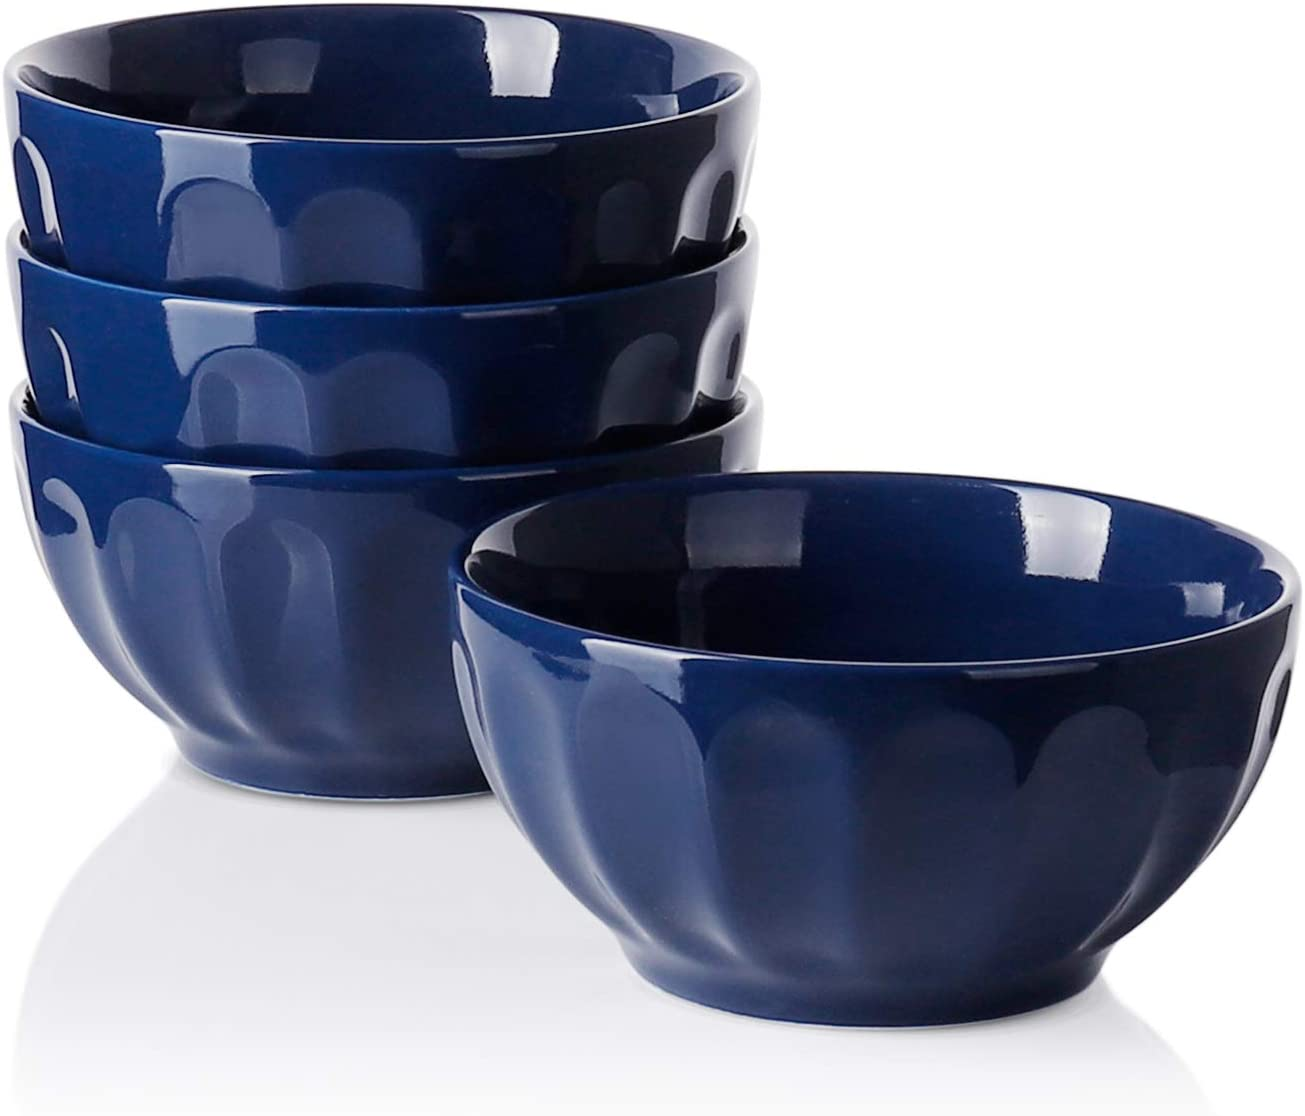 Sweese 106.103 Porcelain Fluted Bowls - 26 Ounce for Cereal, Soup and Fruit - Set of 4, Navy